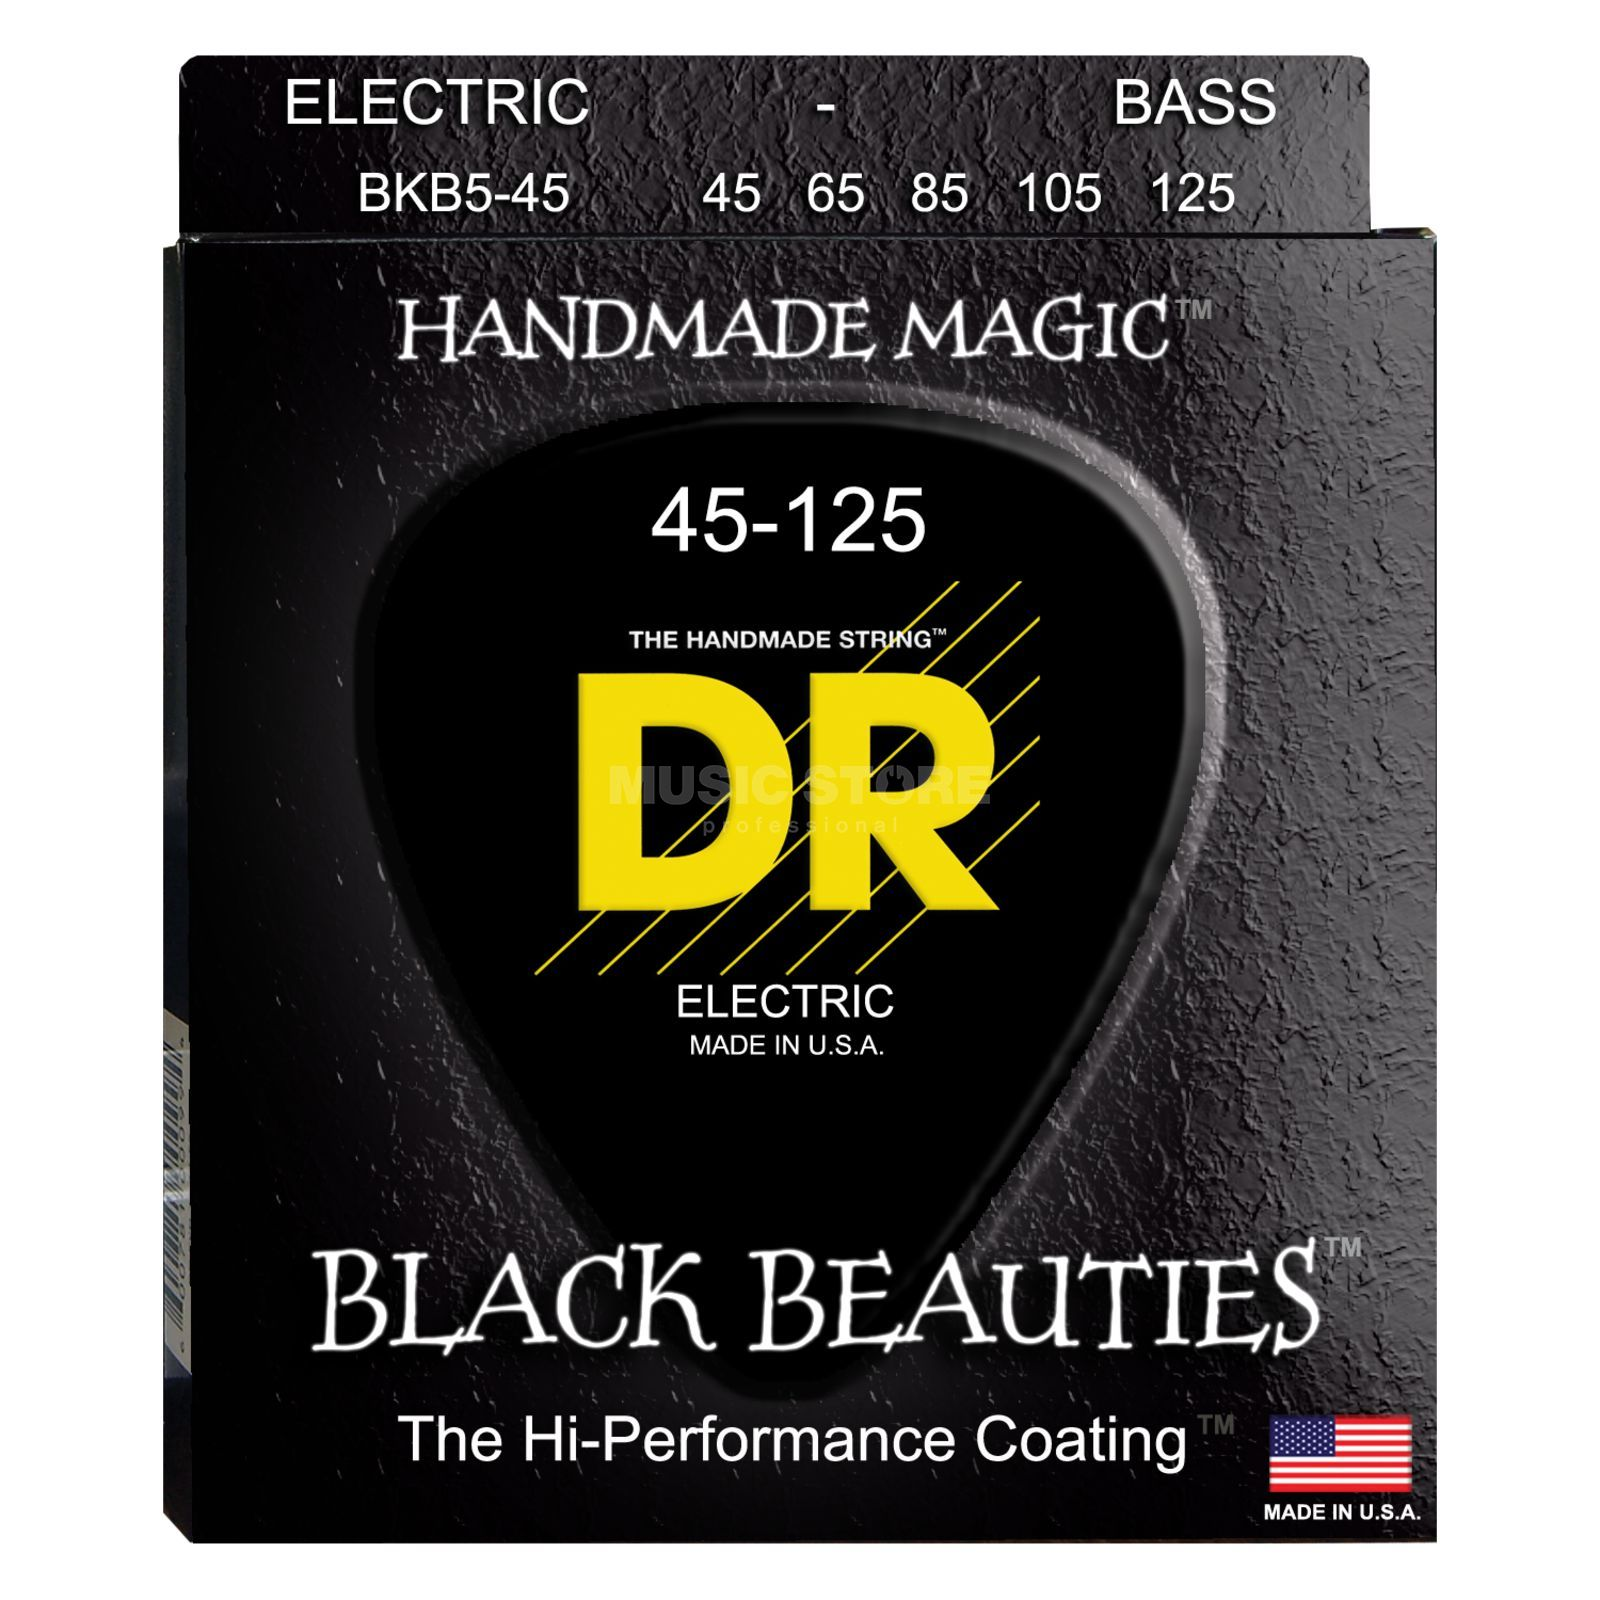 DR 5er Bass 45-125 Extra-Life Black Beauties BKB5-45 Изображение товара